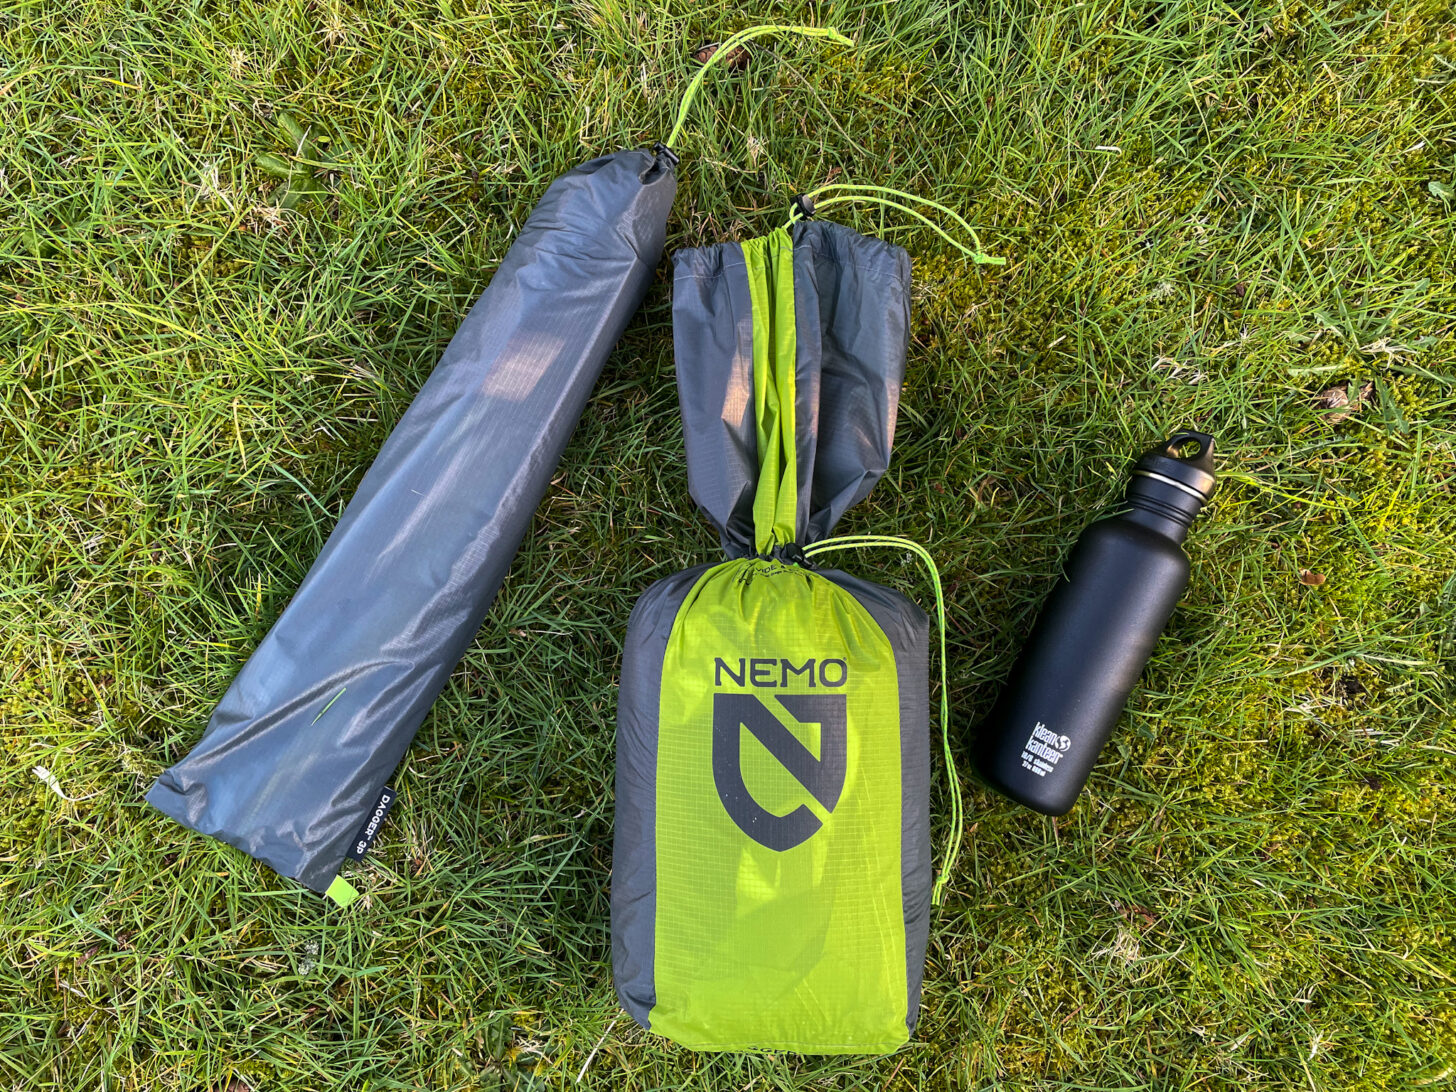 Stuff sack, water bottle, and tent poles divided out on the ground.